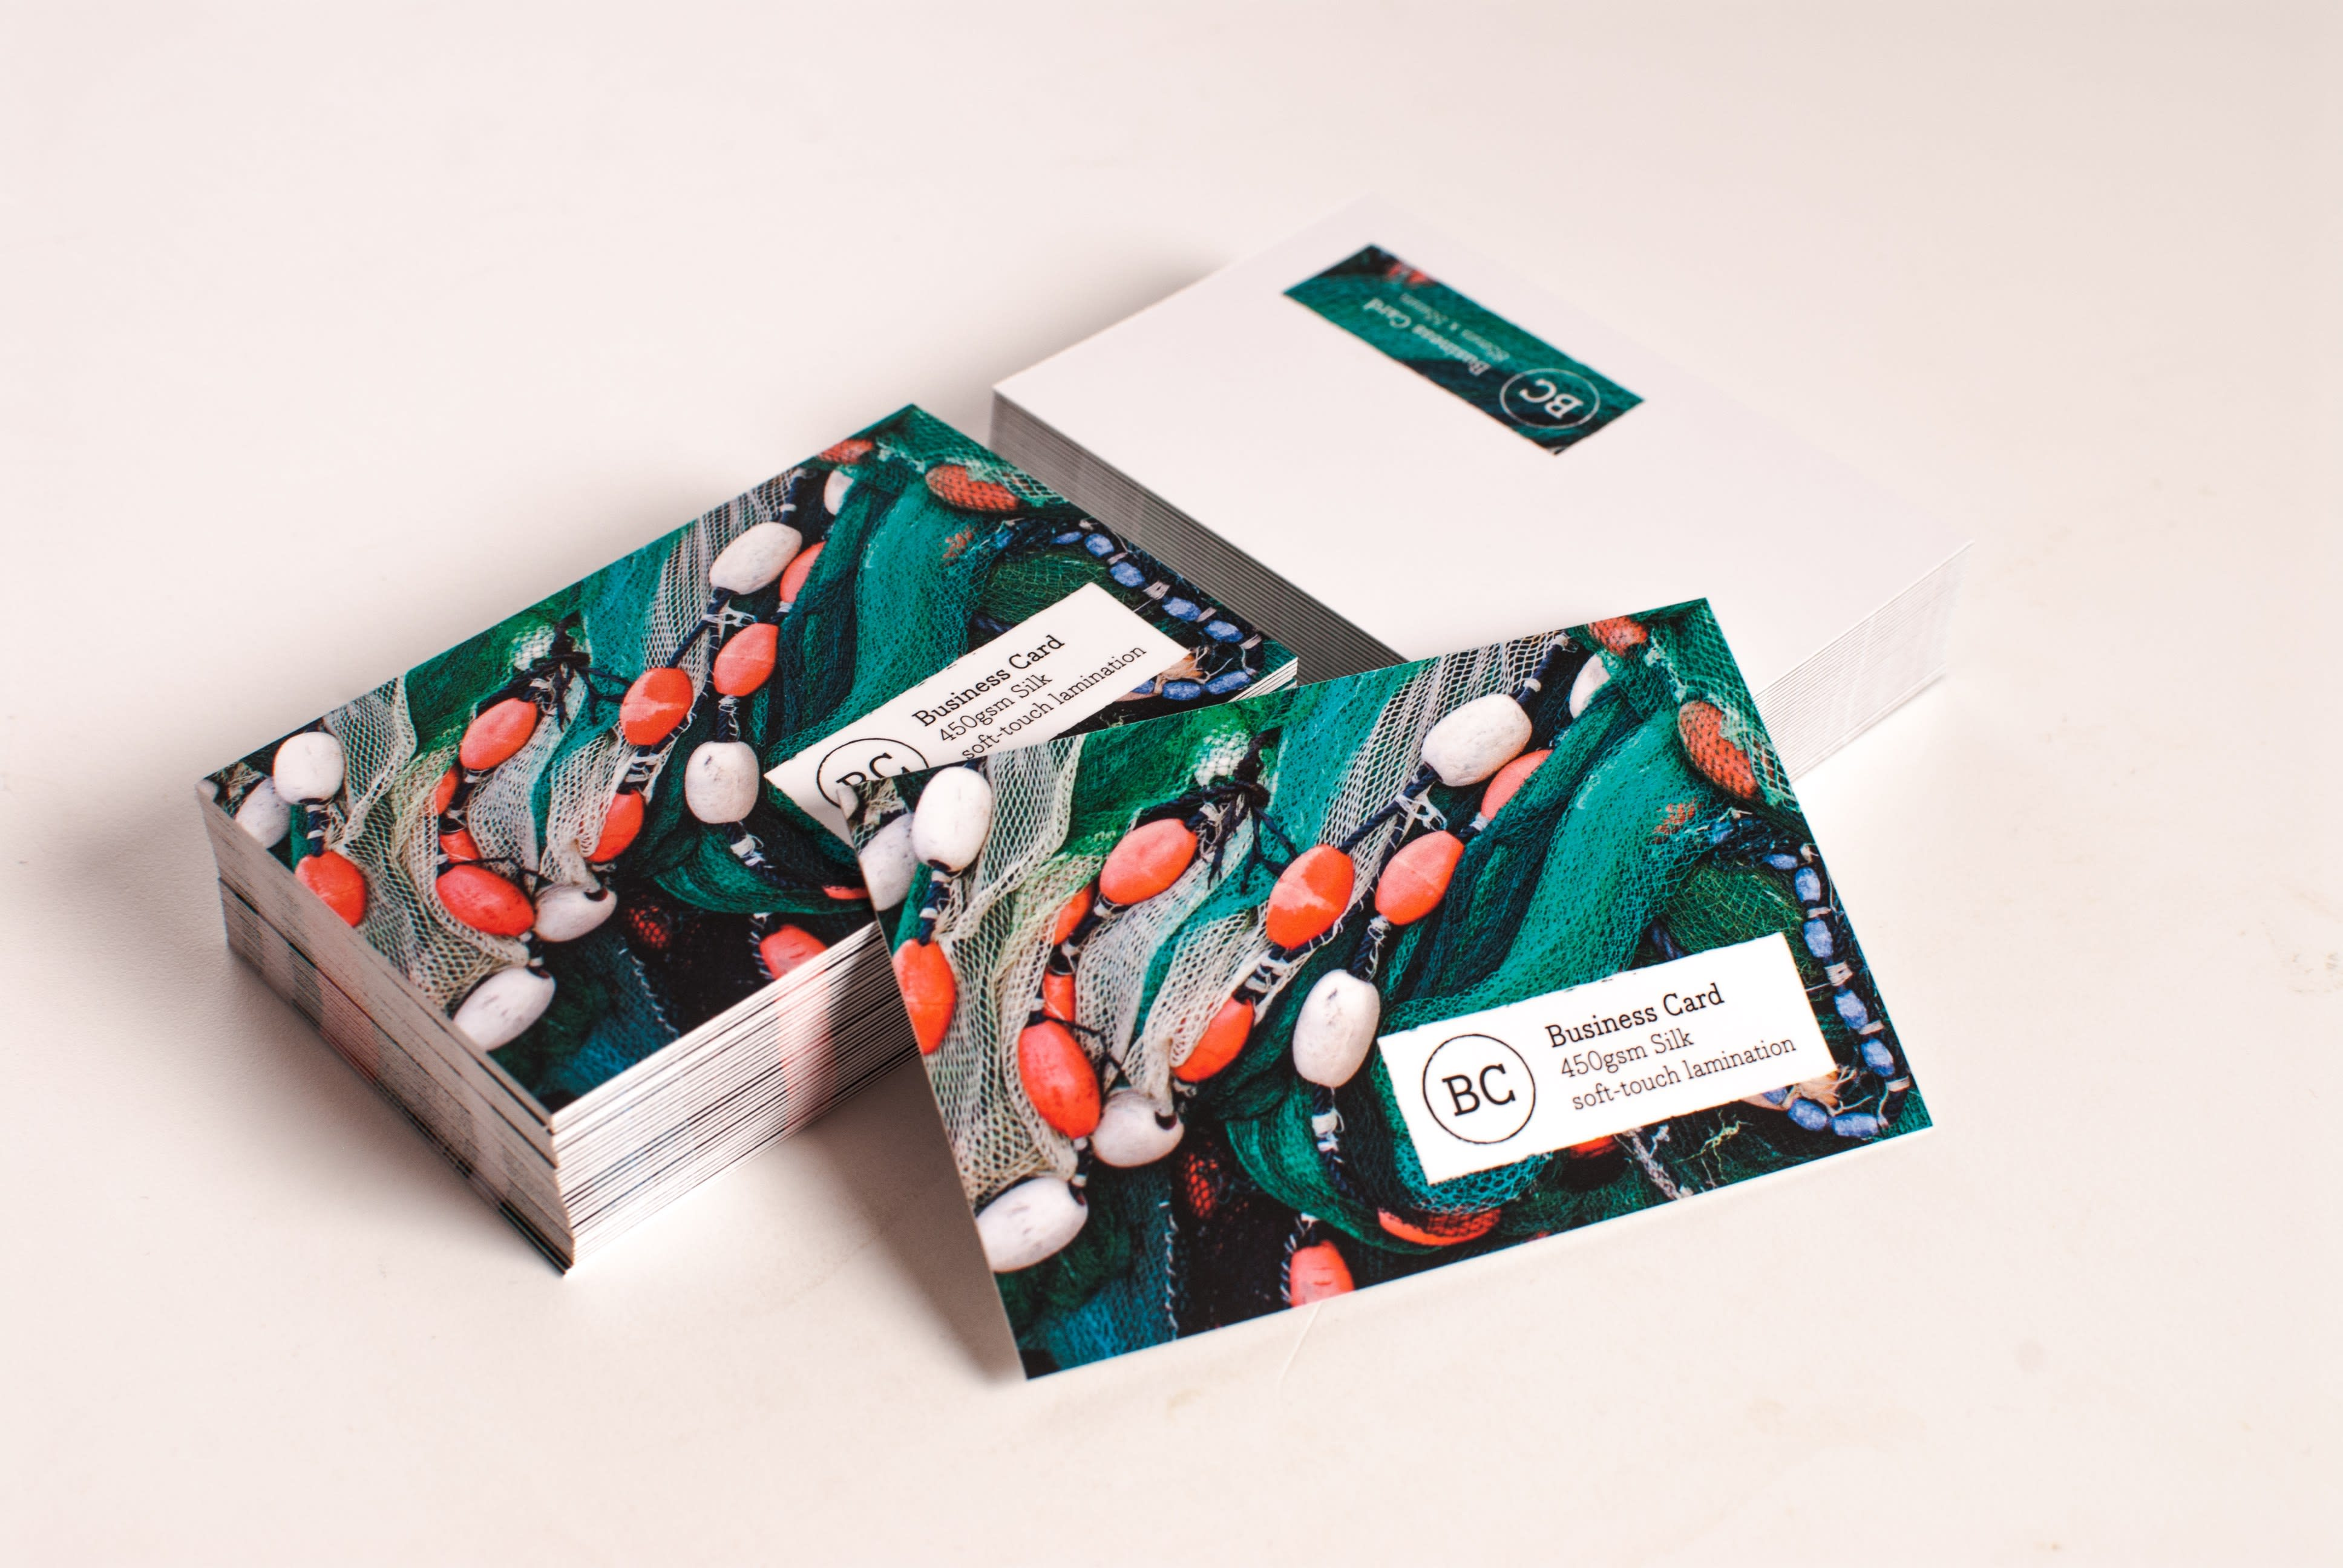 Business Cards 450gsm Soft touch Lamination